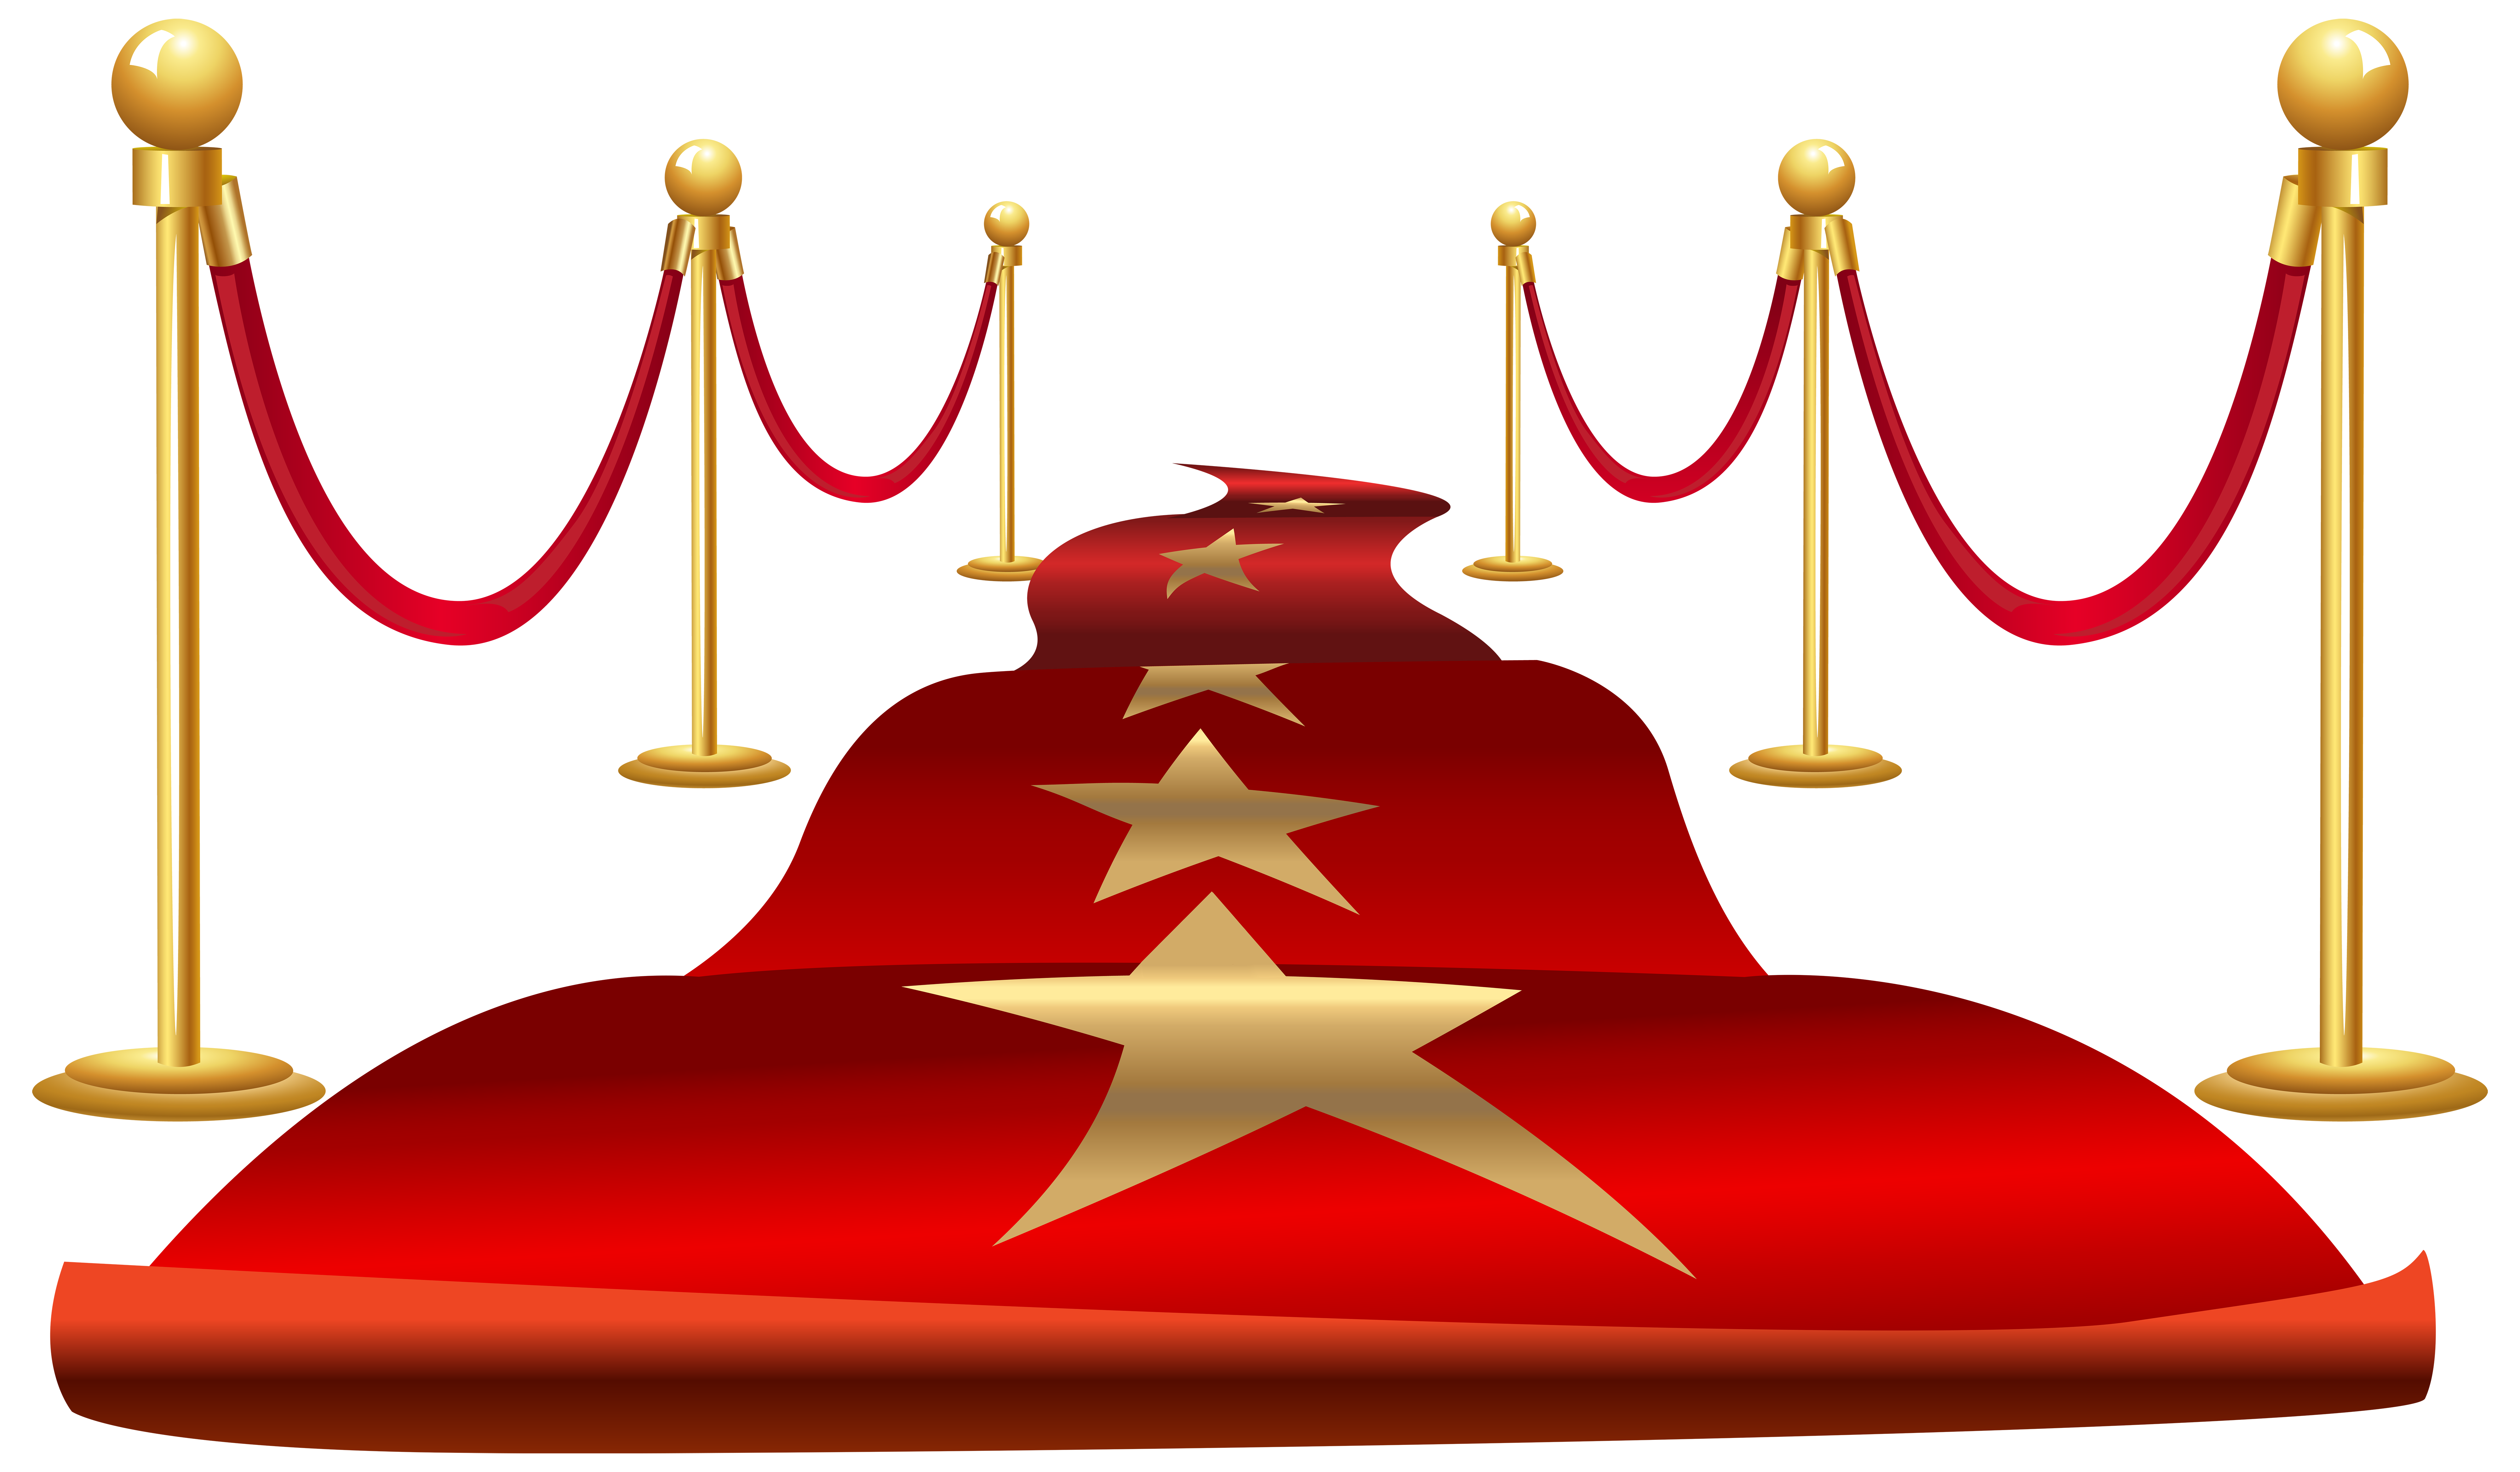 Red carpet clipart images banner freeuse download Red Carpet PNG Clip Art - Best WEB Clipart banner freeuse download